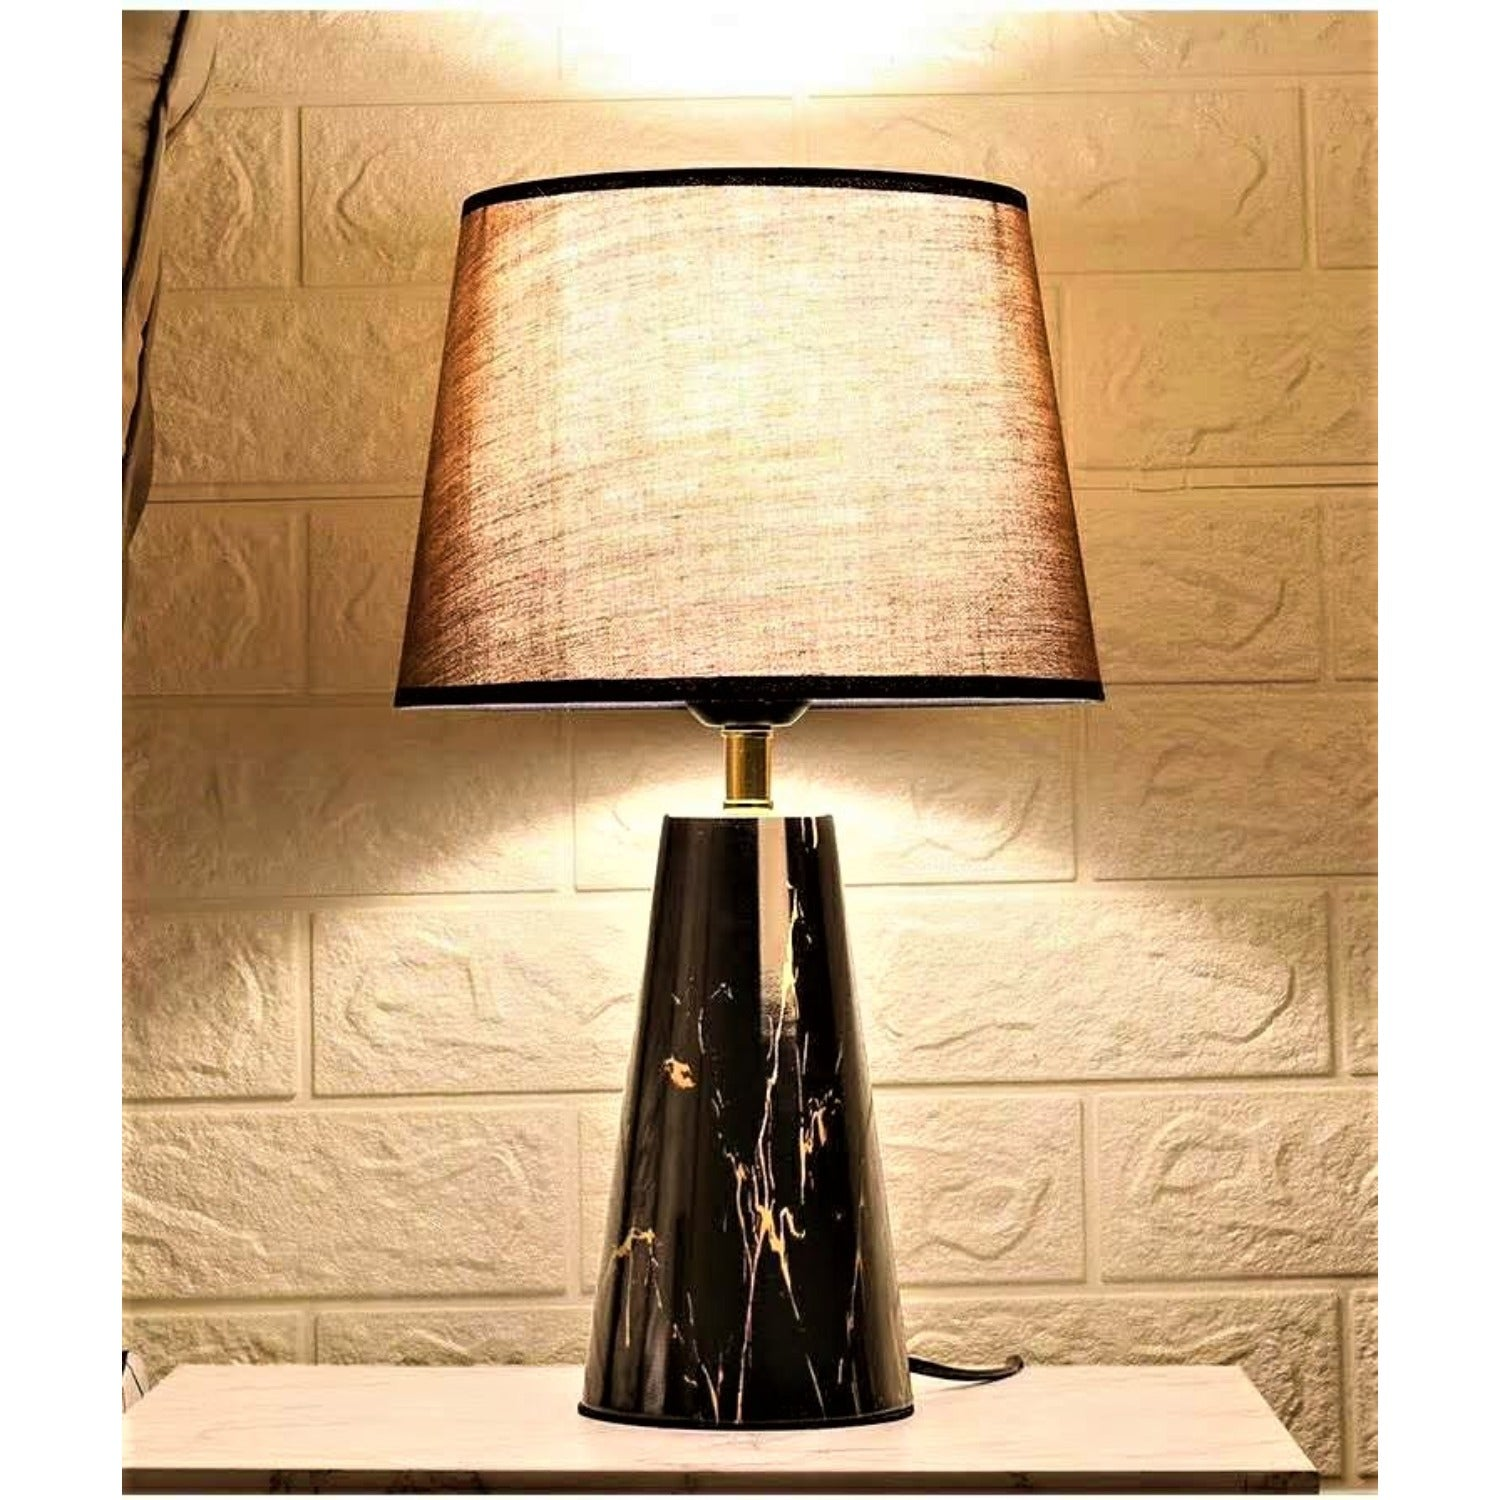 Black Marble Taxture Table/Desk Lamp